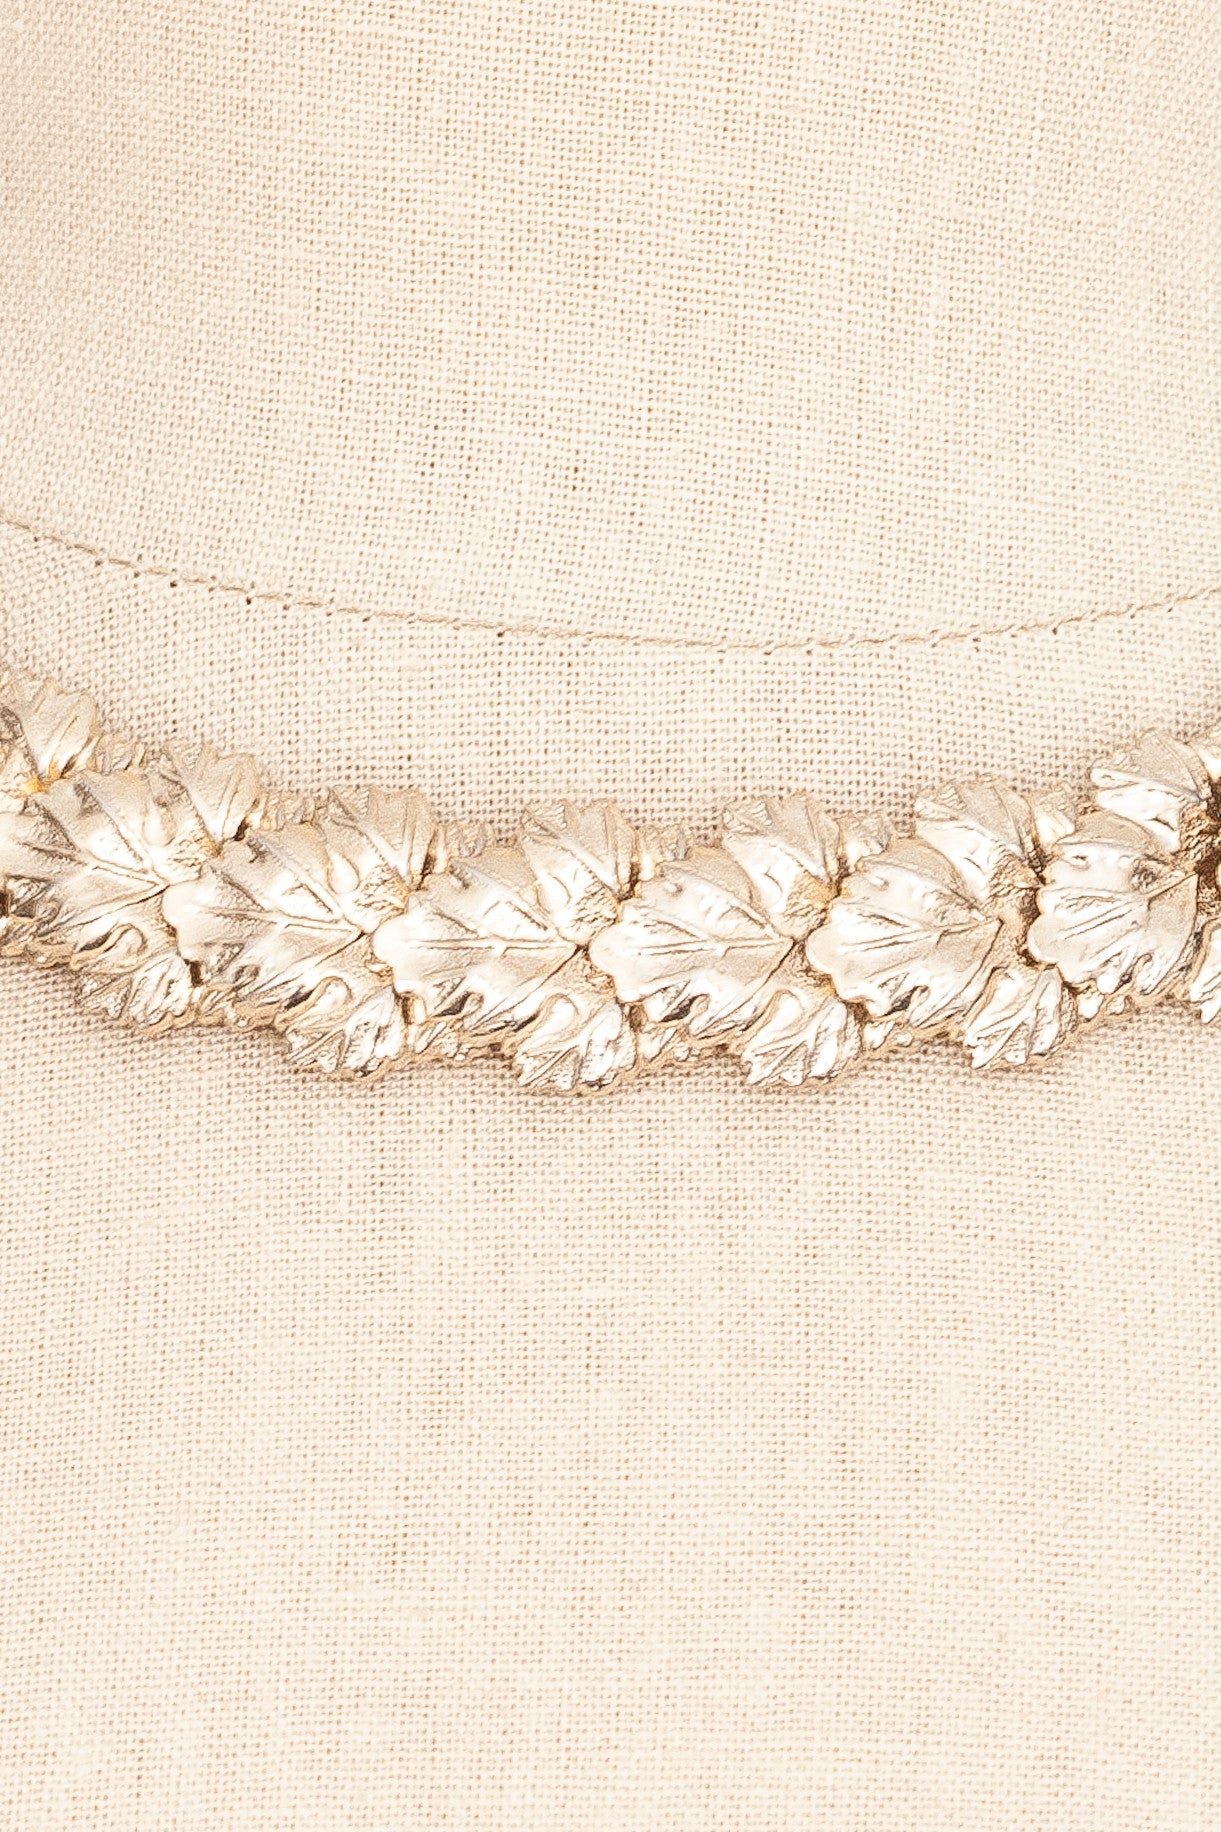 50's__Vintage__Leaf Statement Necklace